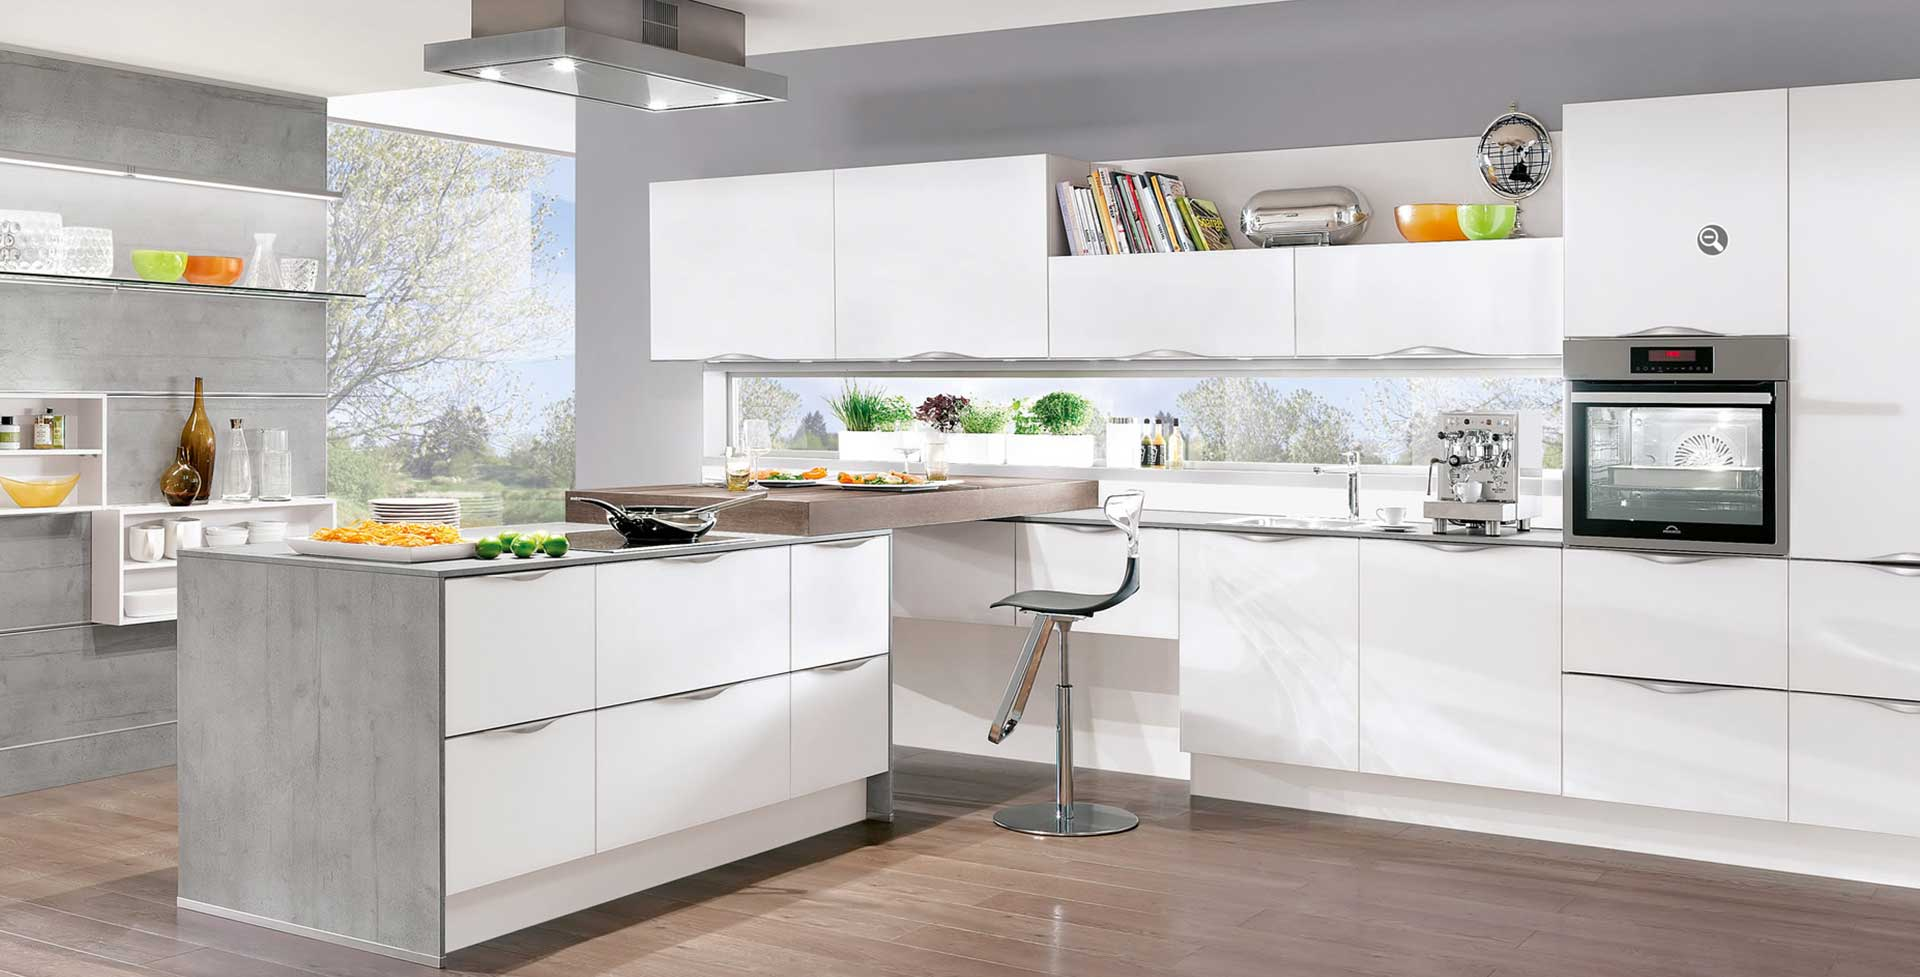 spendlove-kitchens-nobilia-design3